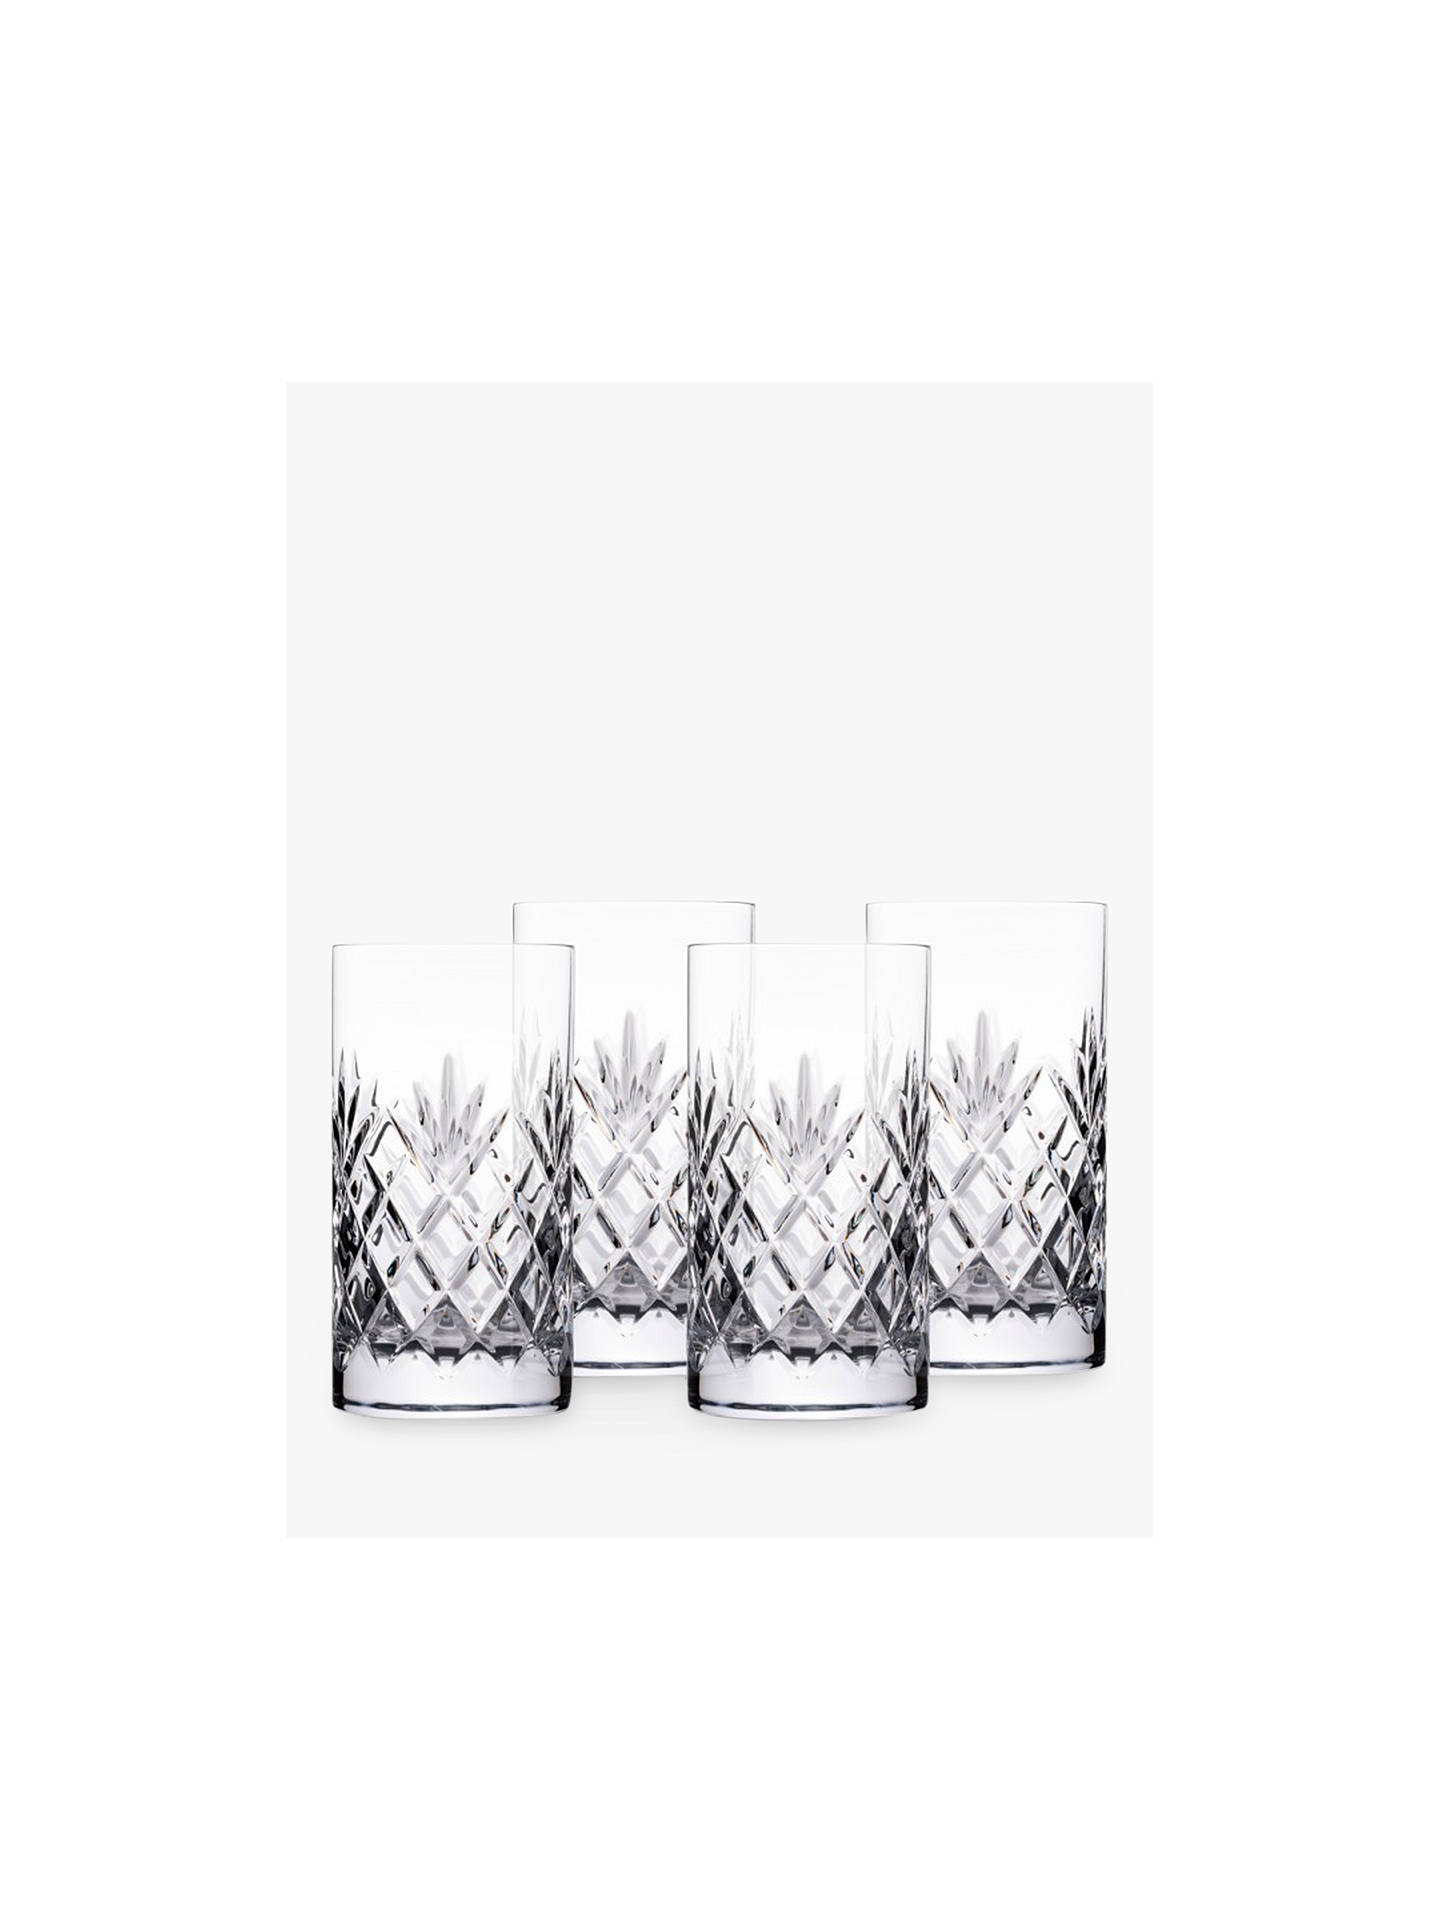 Buy Stuart Crystal York Cut Glass Highball Glasses, Clear, Set of 4 Online at johnlewis.com